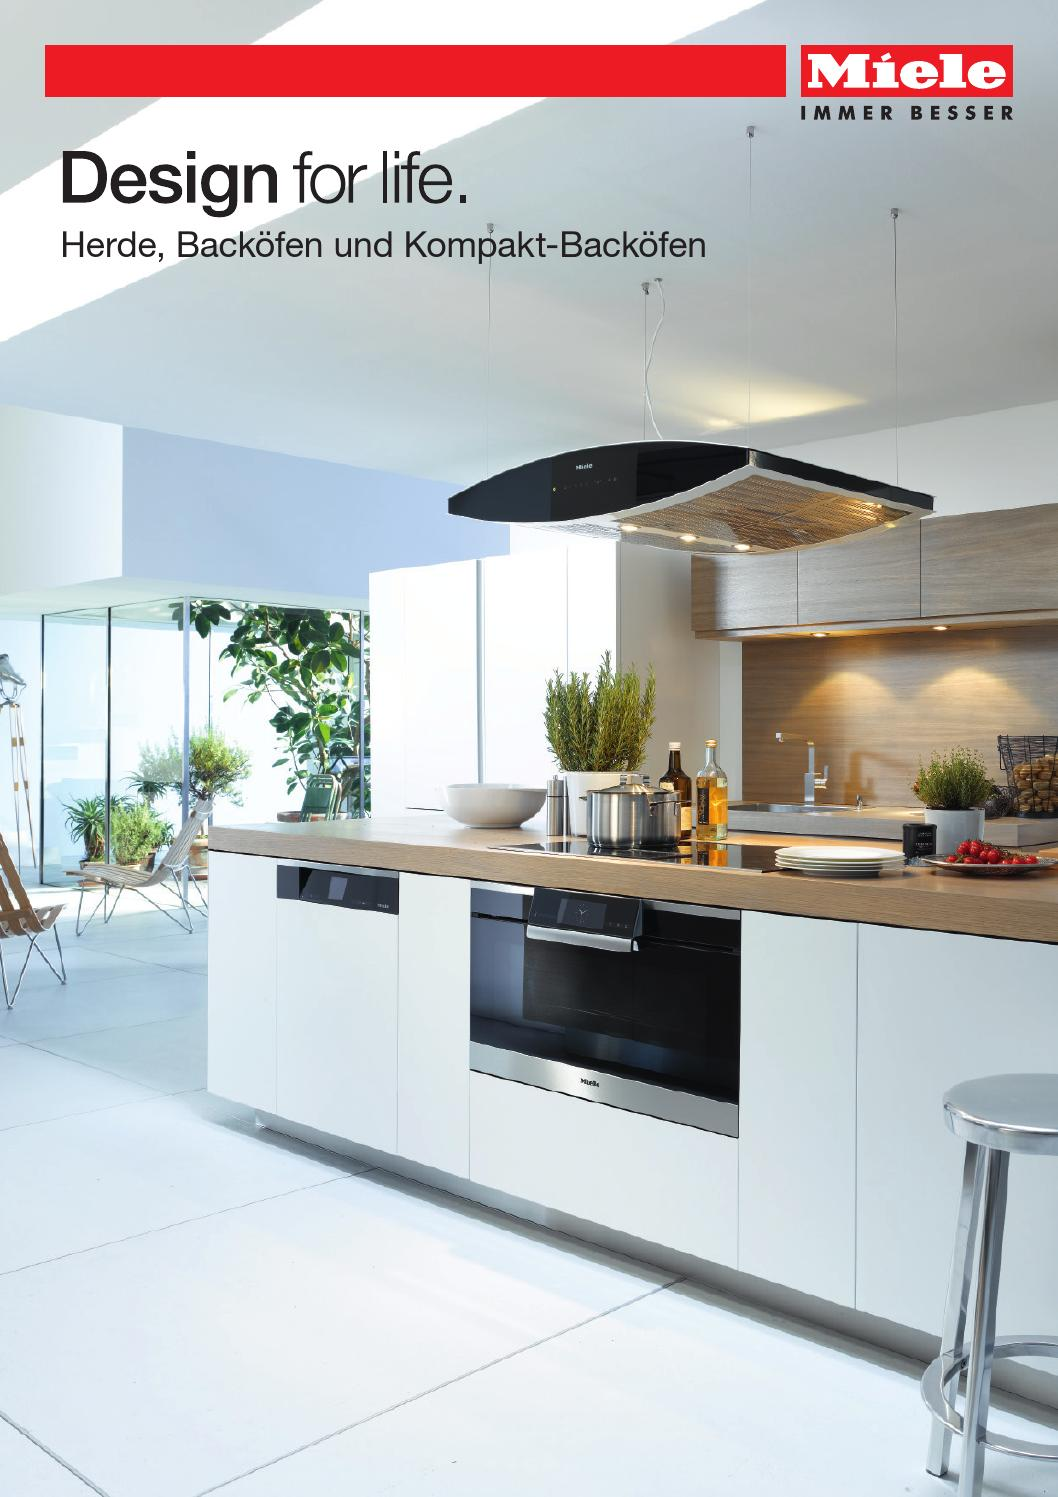 miele produktkatalog herde back fen und kompakt back fen ch de by miele issuu. Black Bedroom Furniture Sets. Home Design Ideas